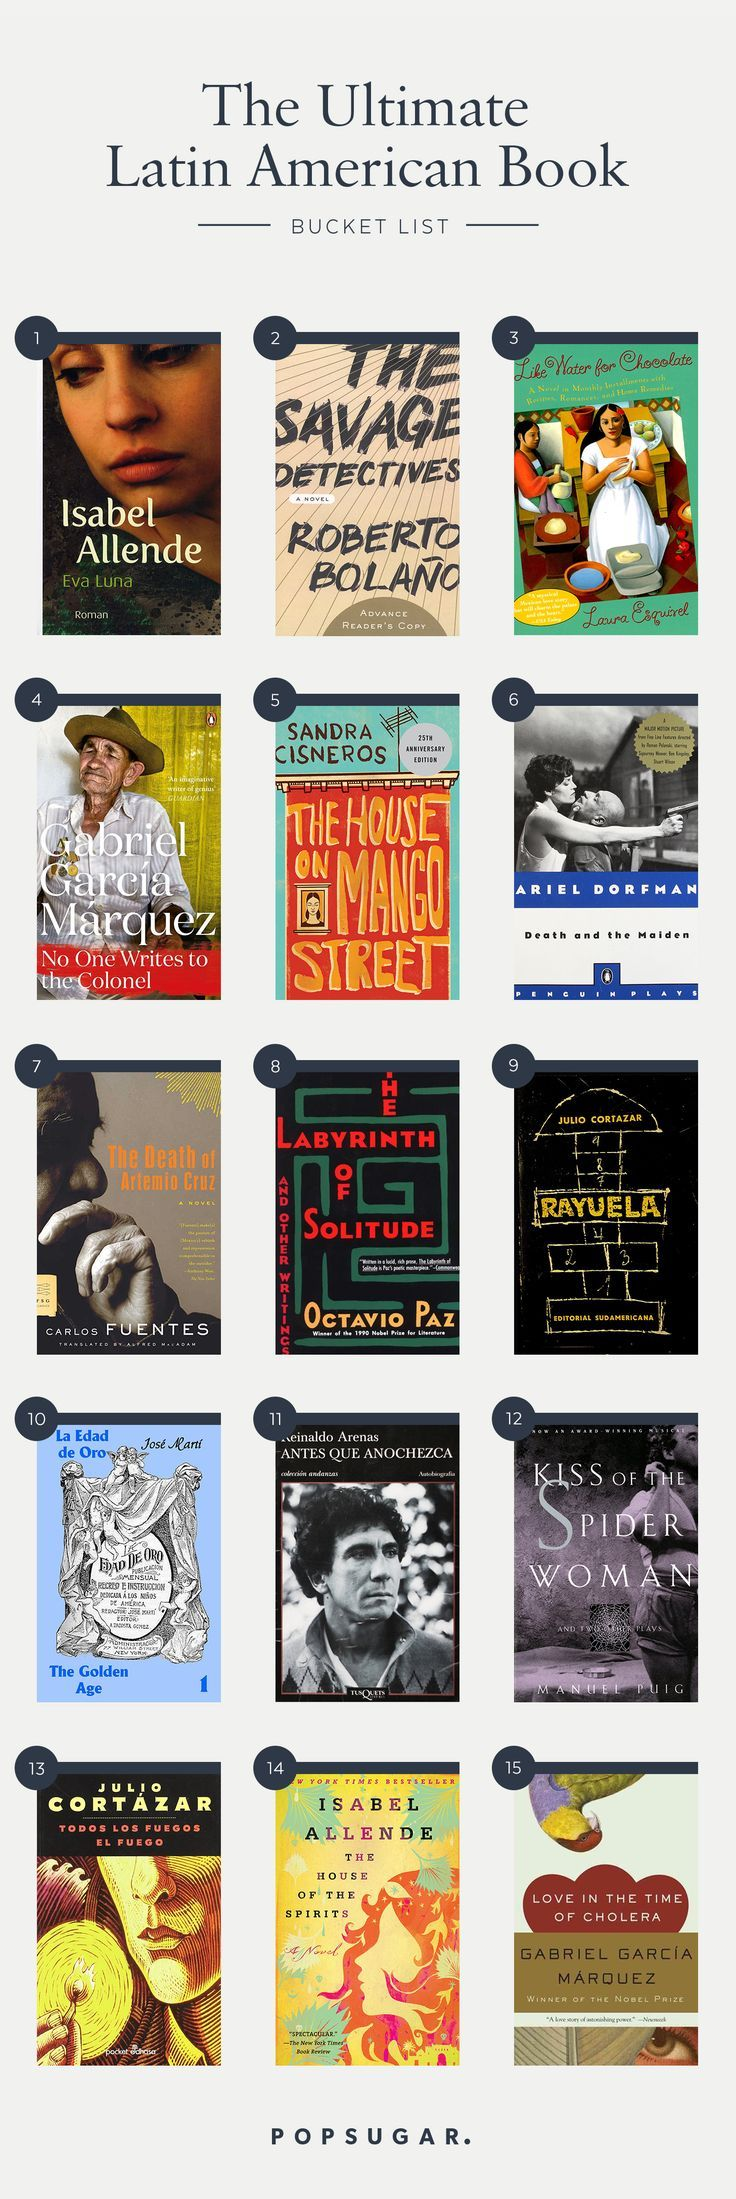 With so many incredible books by talented Latino authors, it can be hard to narrow down your top must-reads. Here's the ultimate Latina American Book guide!